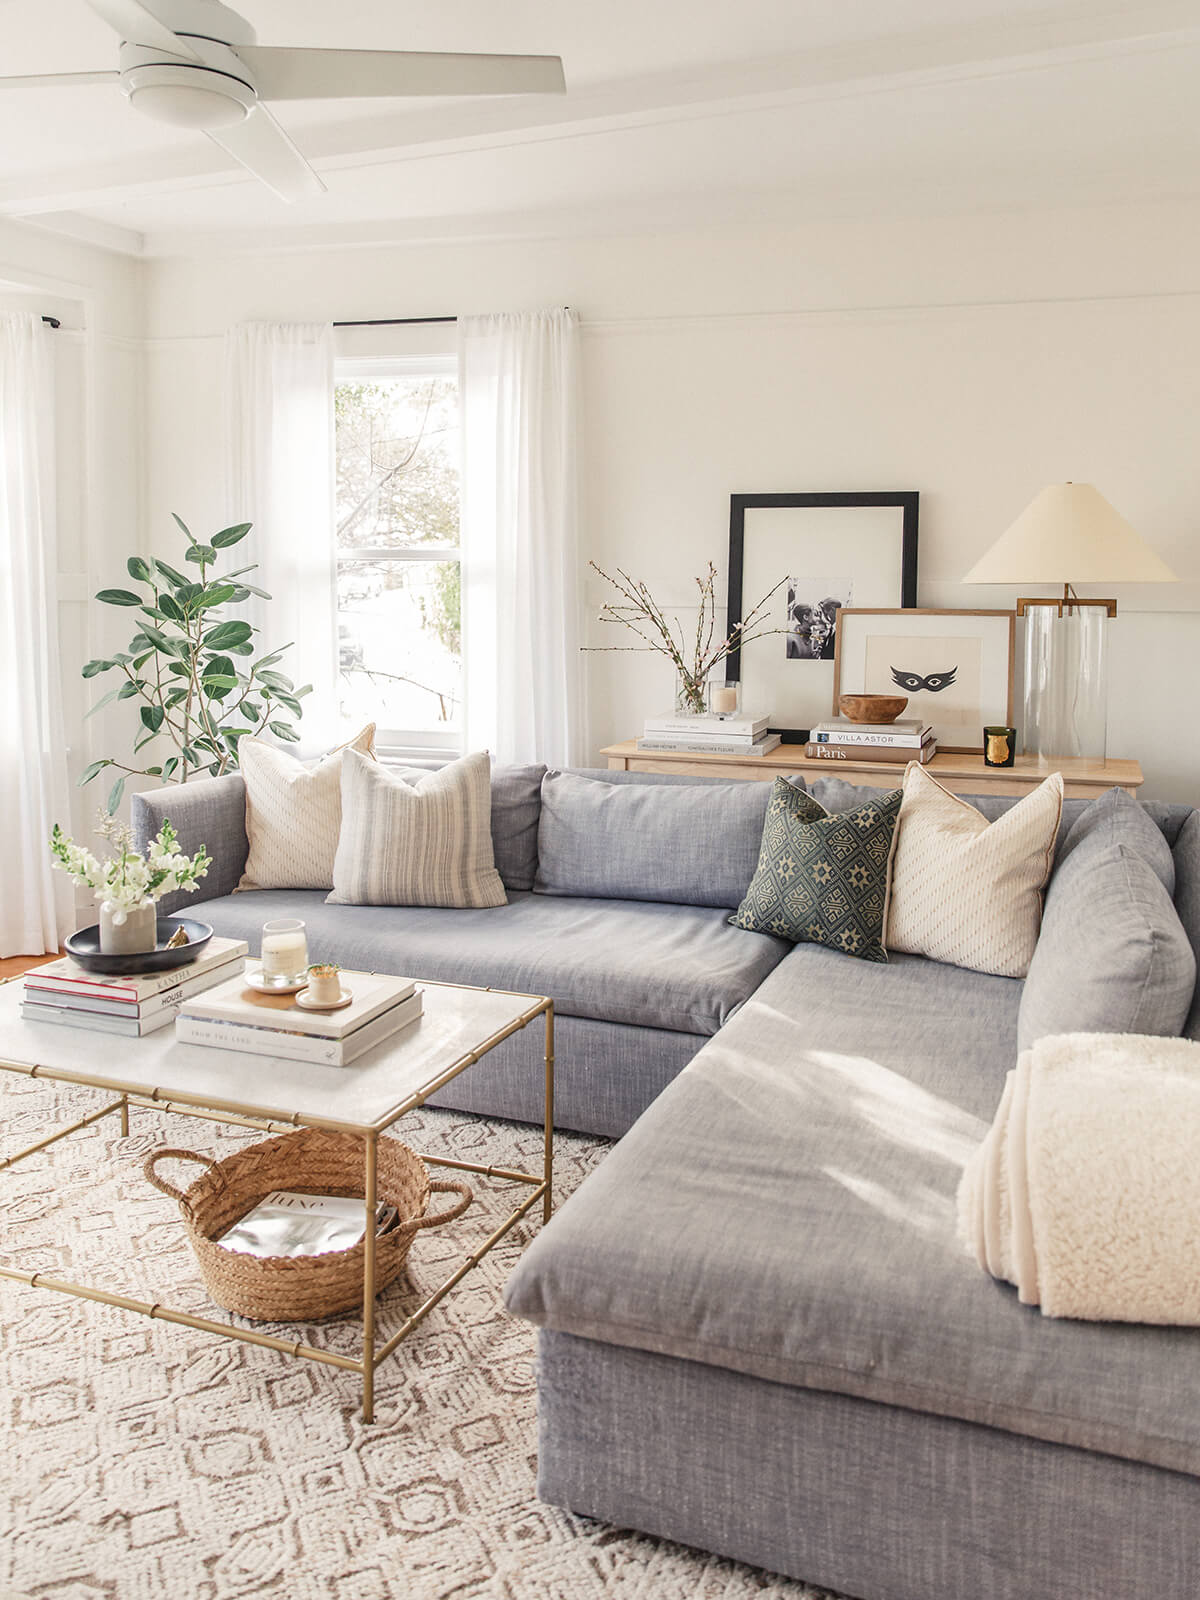 Creating a Warm Scandi Style Living Room